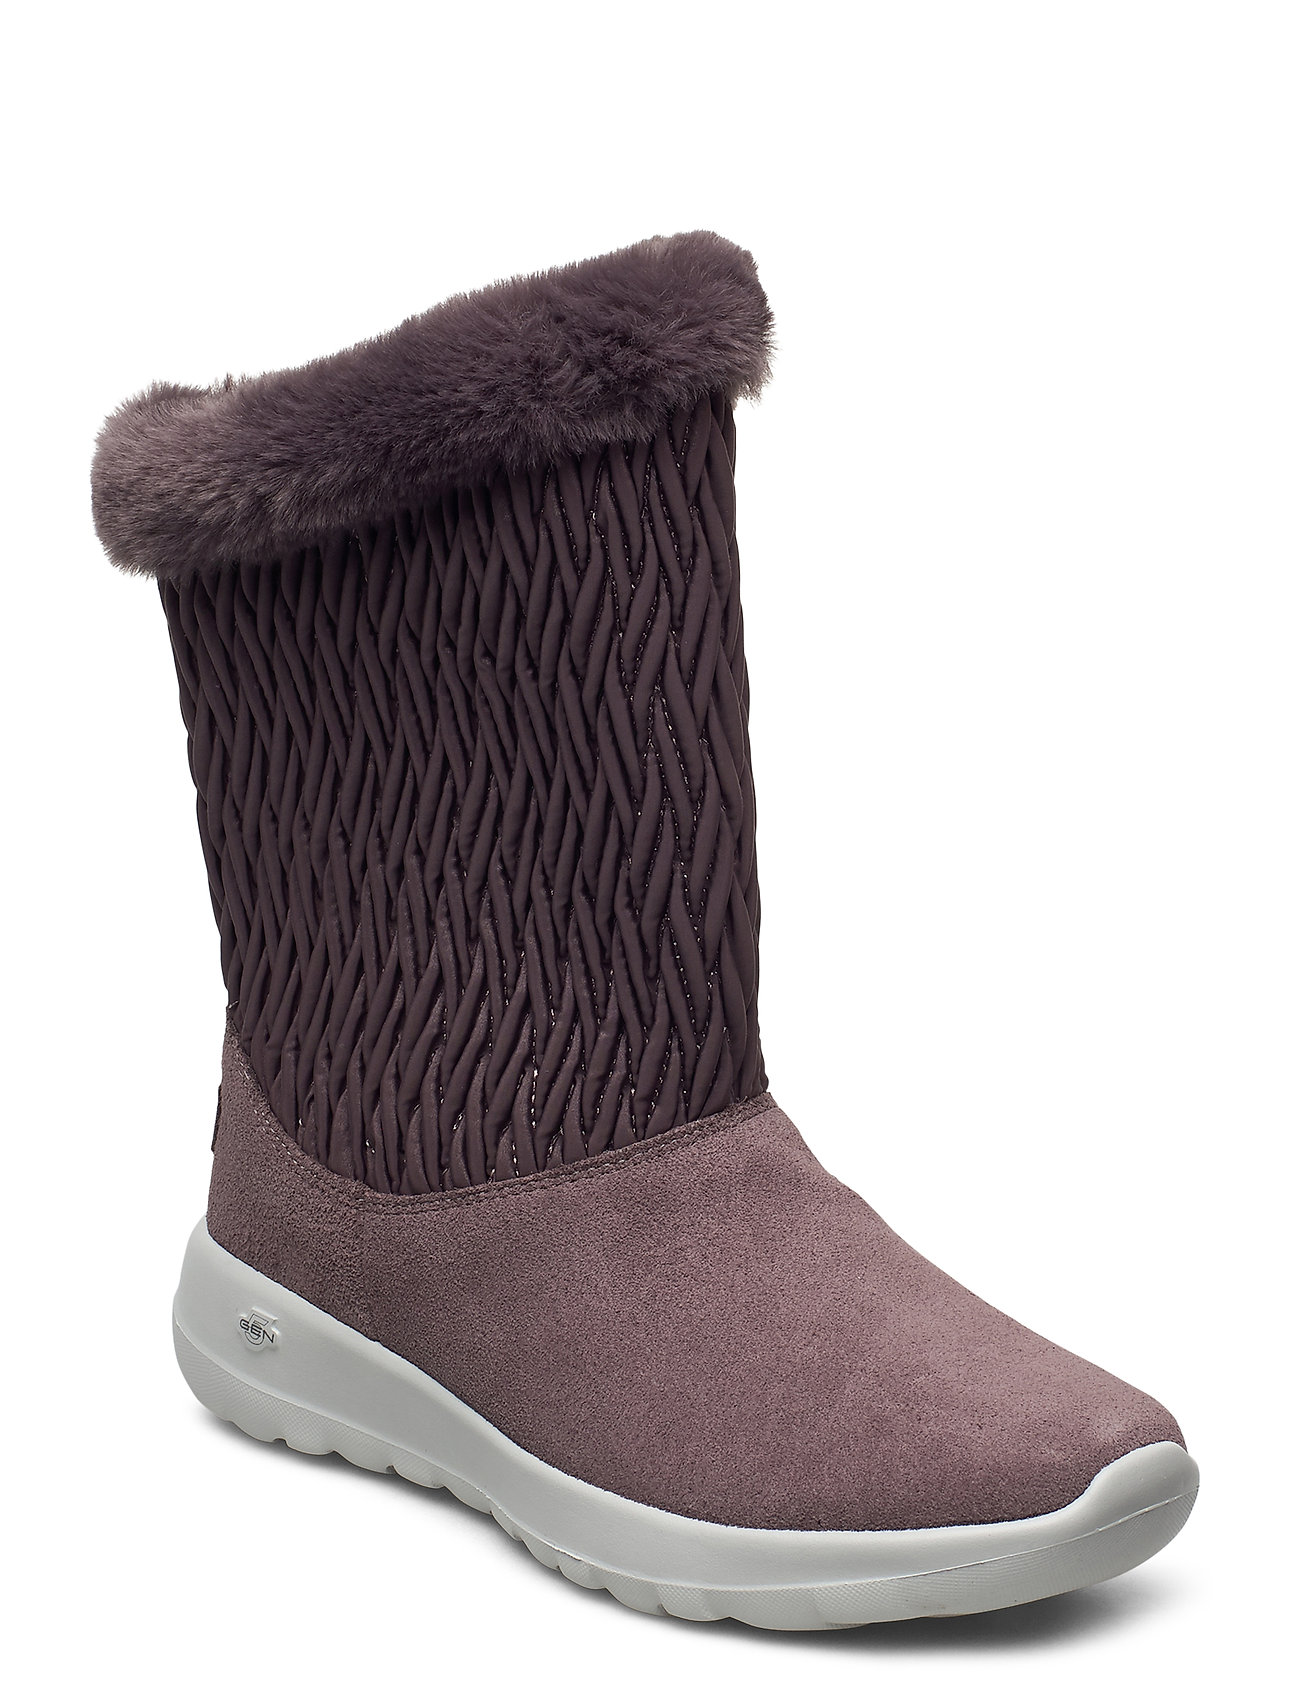 Image of Womens On-The-Go Joy - Snow Bunny Shoes Boots Ankle Boots Ankle Boot - Flat Lyserød Skechers (3441399919)